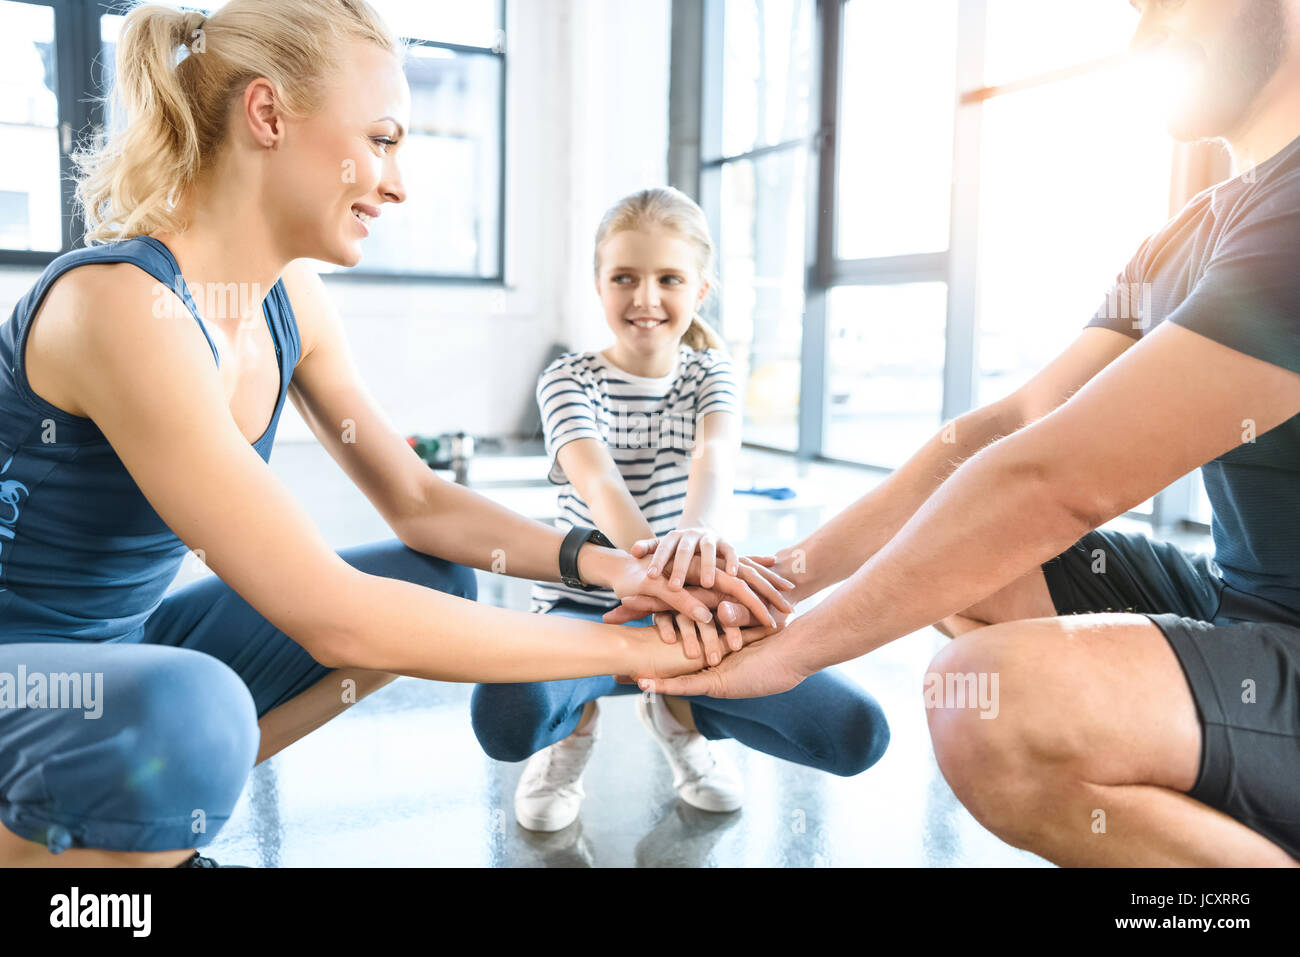 Family holding hands together at fitness center - Stock Image